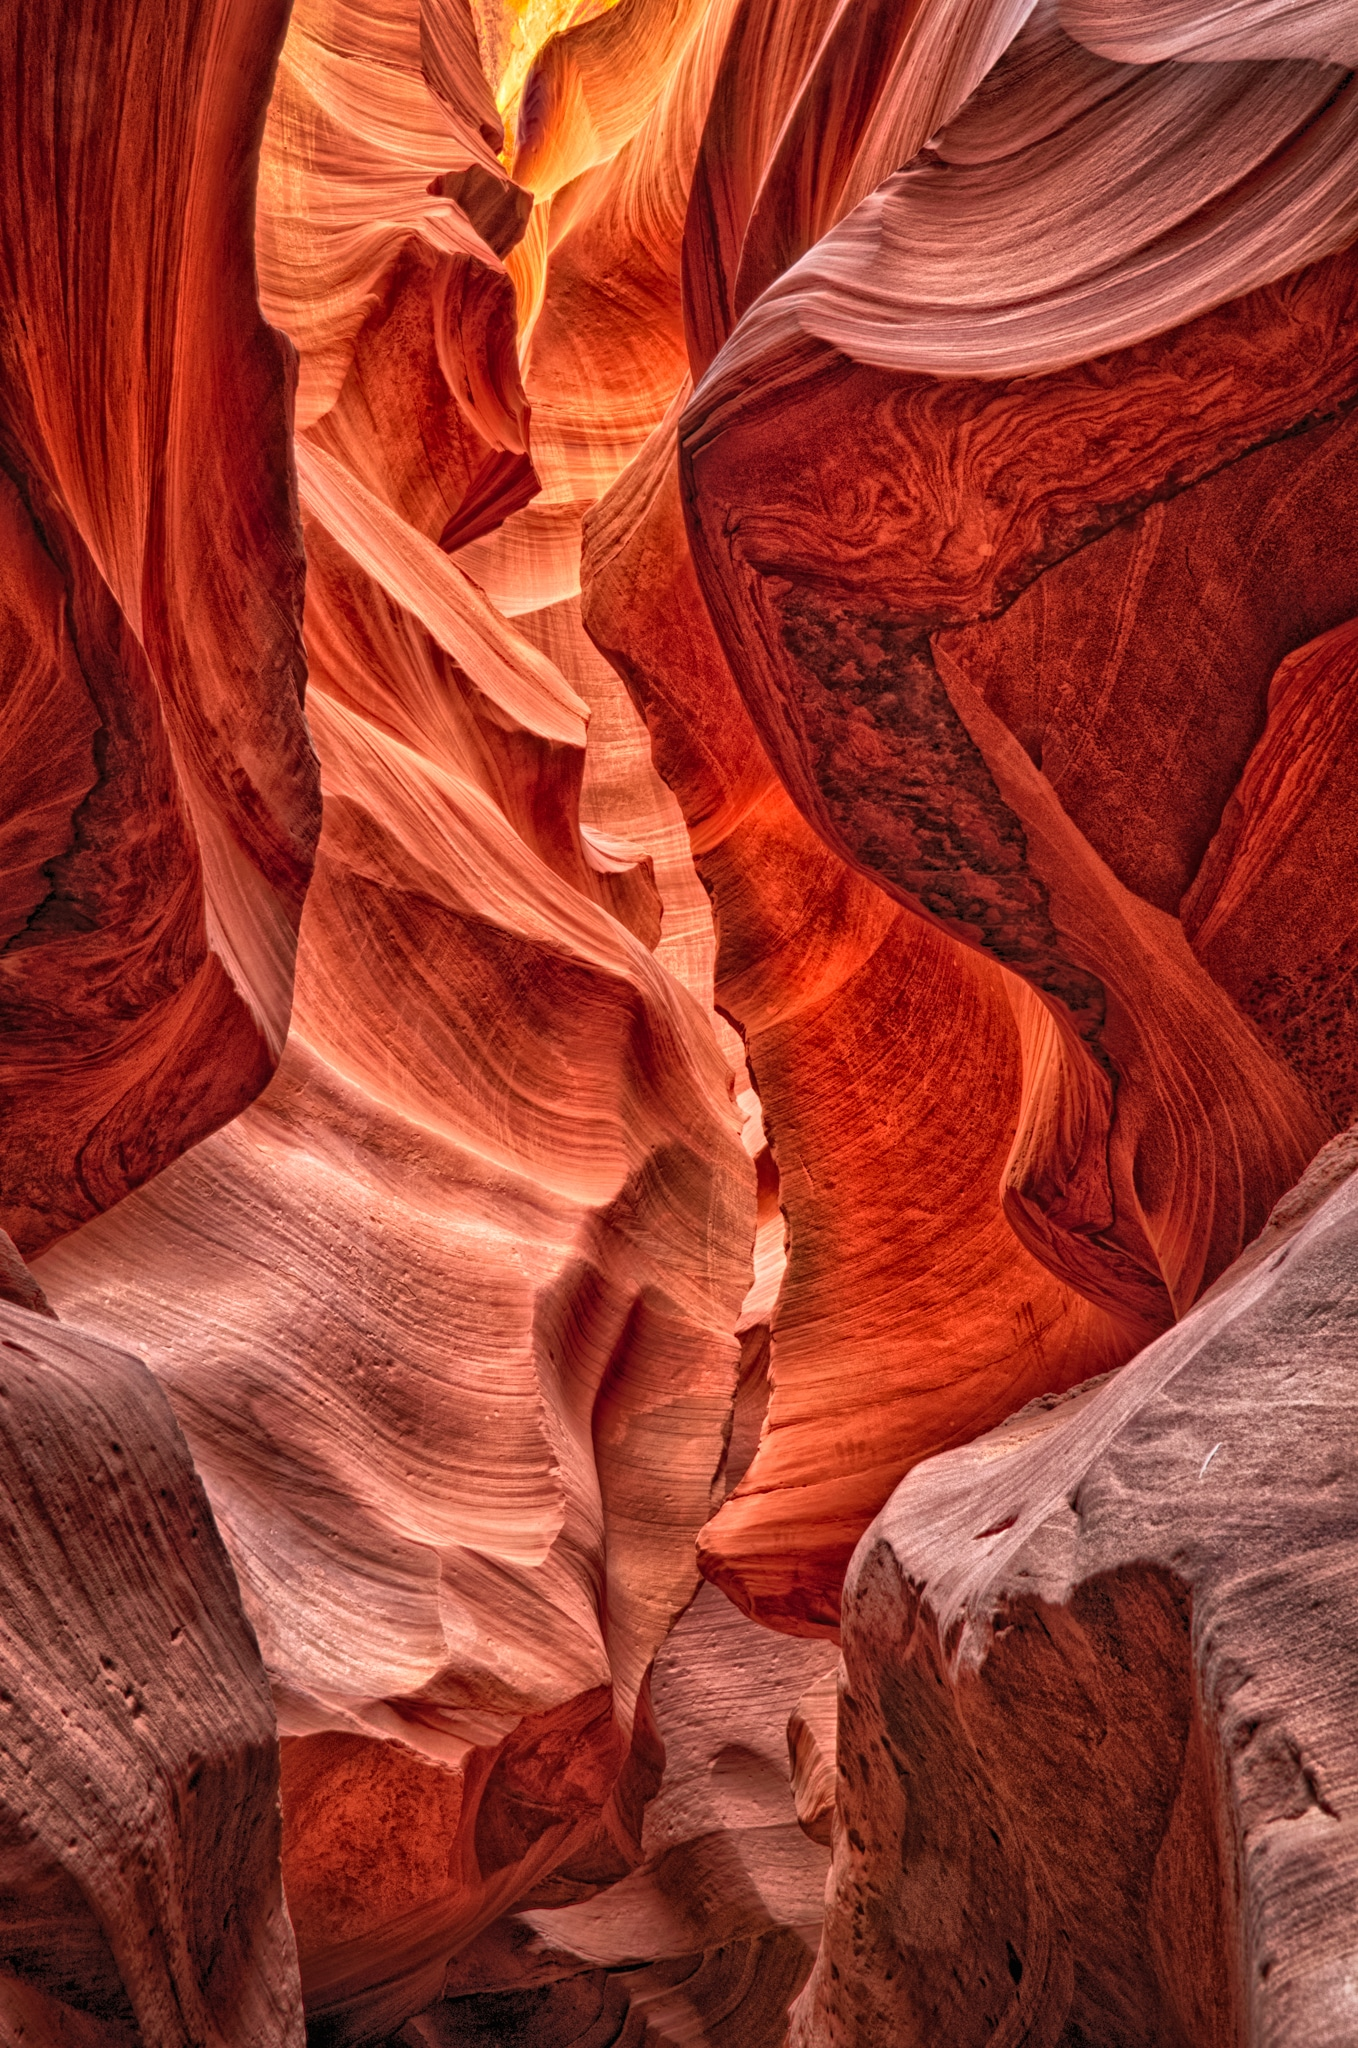 View through Lower Antelope Canyon, a slot canyon just east of Page, Arizona.